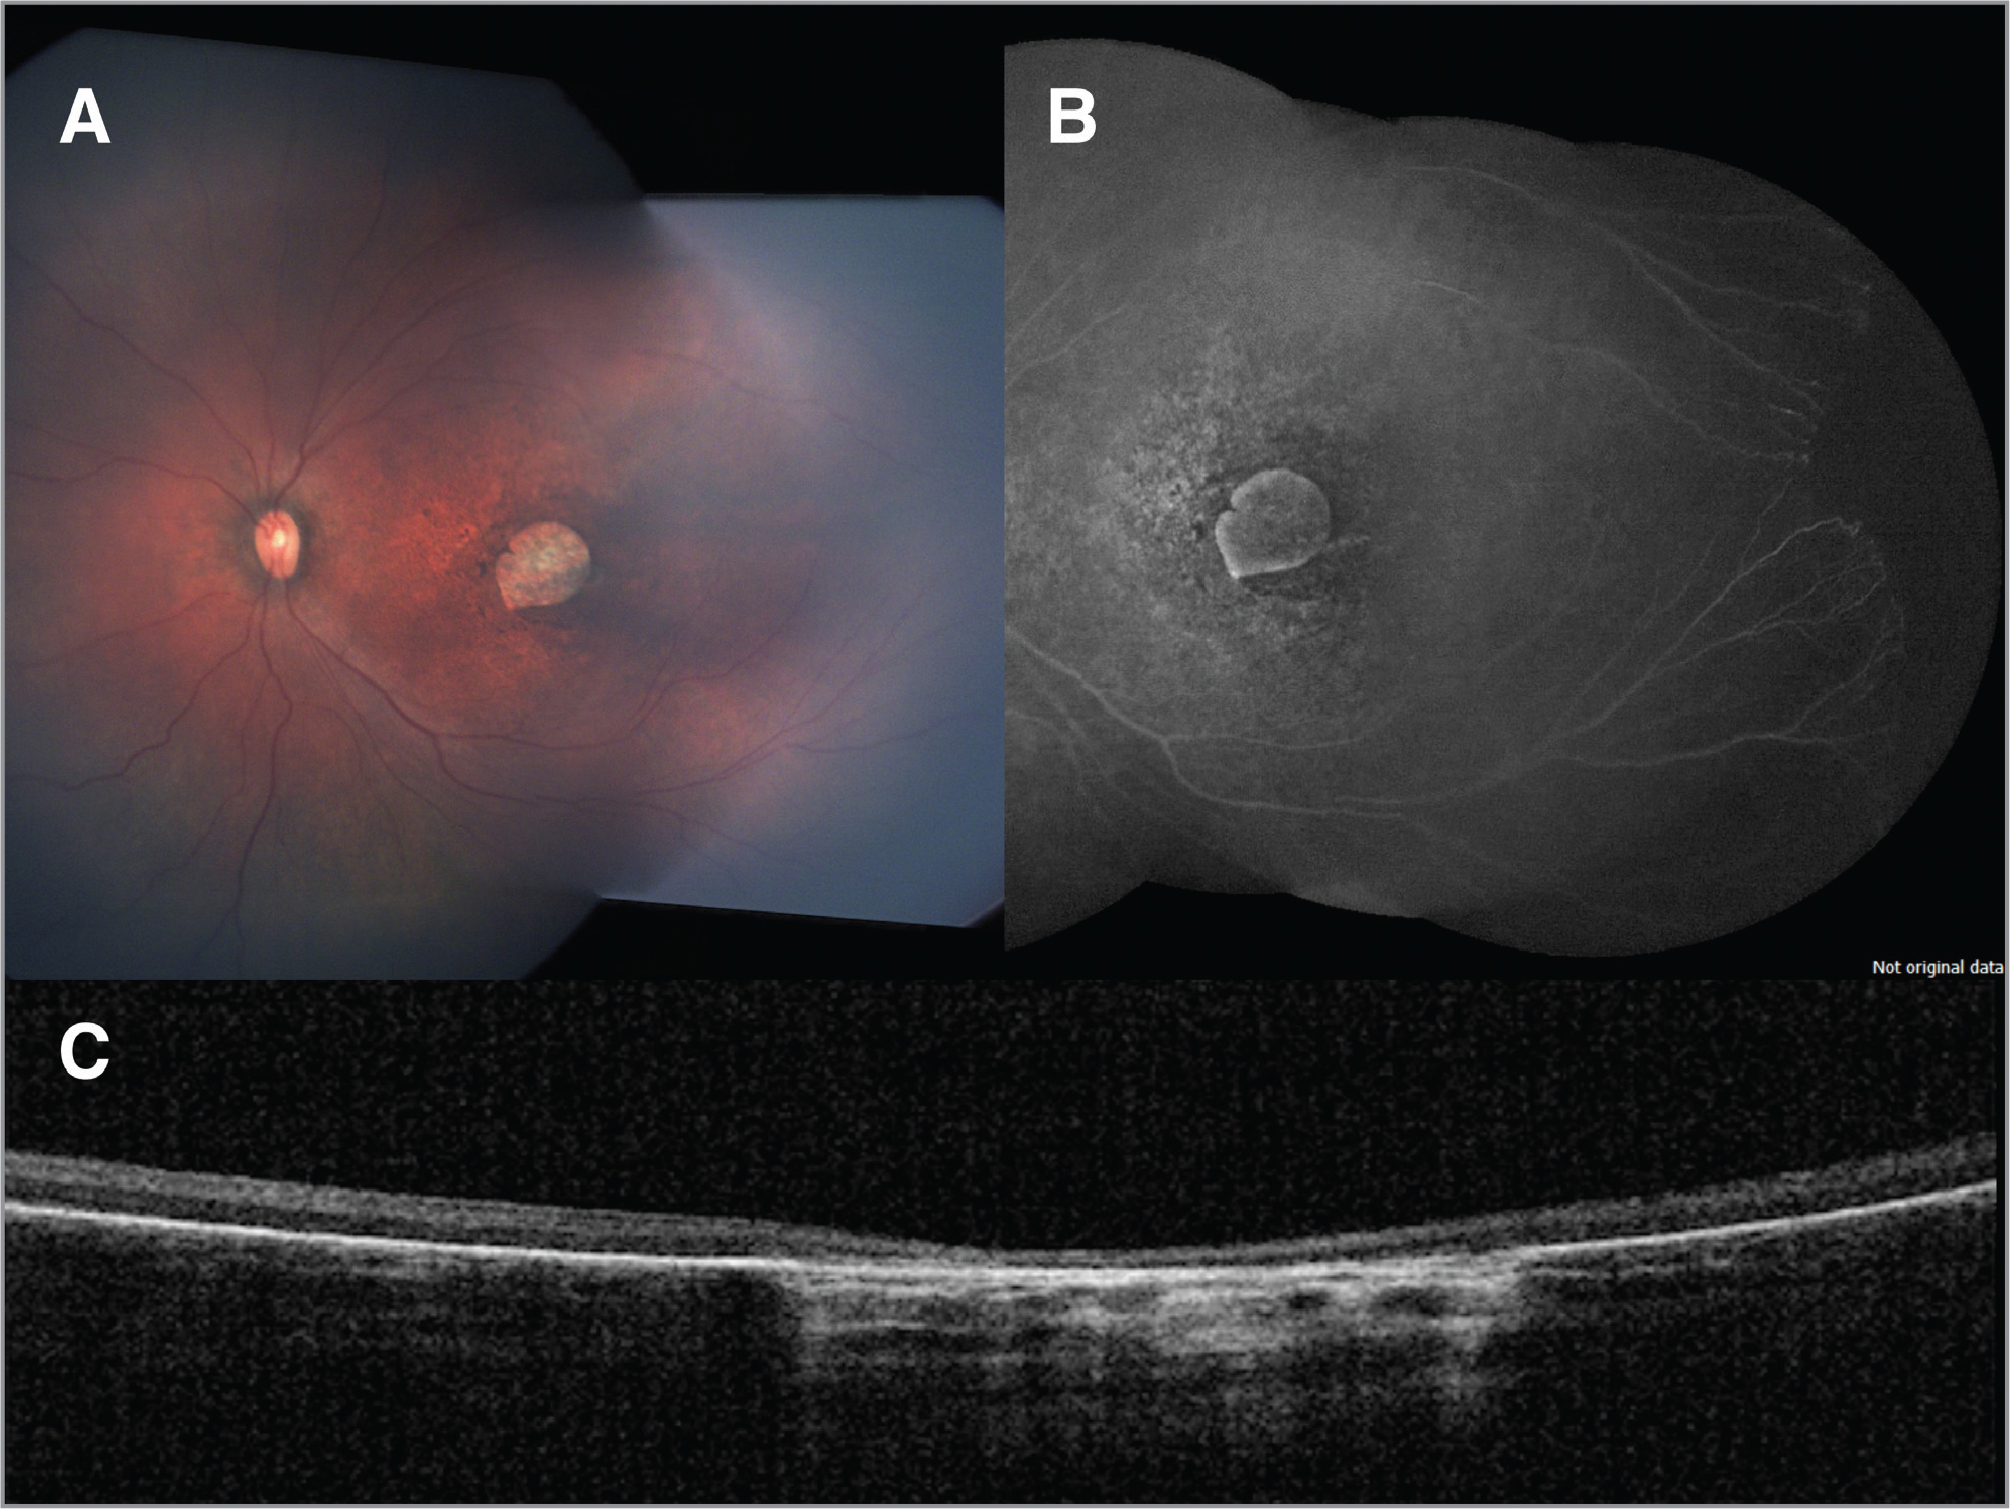 Ophthalmological findings in a full-term infant with congenital Zika syndrome. (A) Fundus montage of the left eye (OS) demonstrating increased optic nerve cupping, focal pigmentary changes, and well-defined chorioretinal atrophy within the macular region. (B) Fluorescein angiography montage of the OS showing a window defect in the macular region and peripheral avascularity of the temporal retina. (C) Macular optical coherence tomography of the right eye revealing retinal and choroidal thinning with discontinuation of the ellipsoid zone.